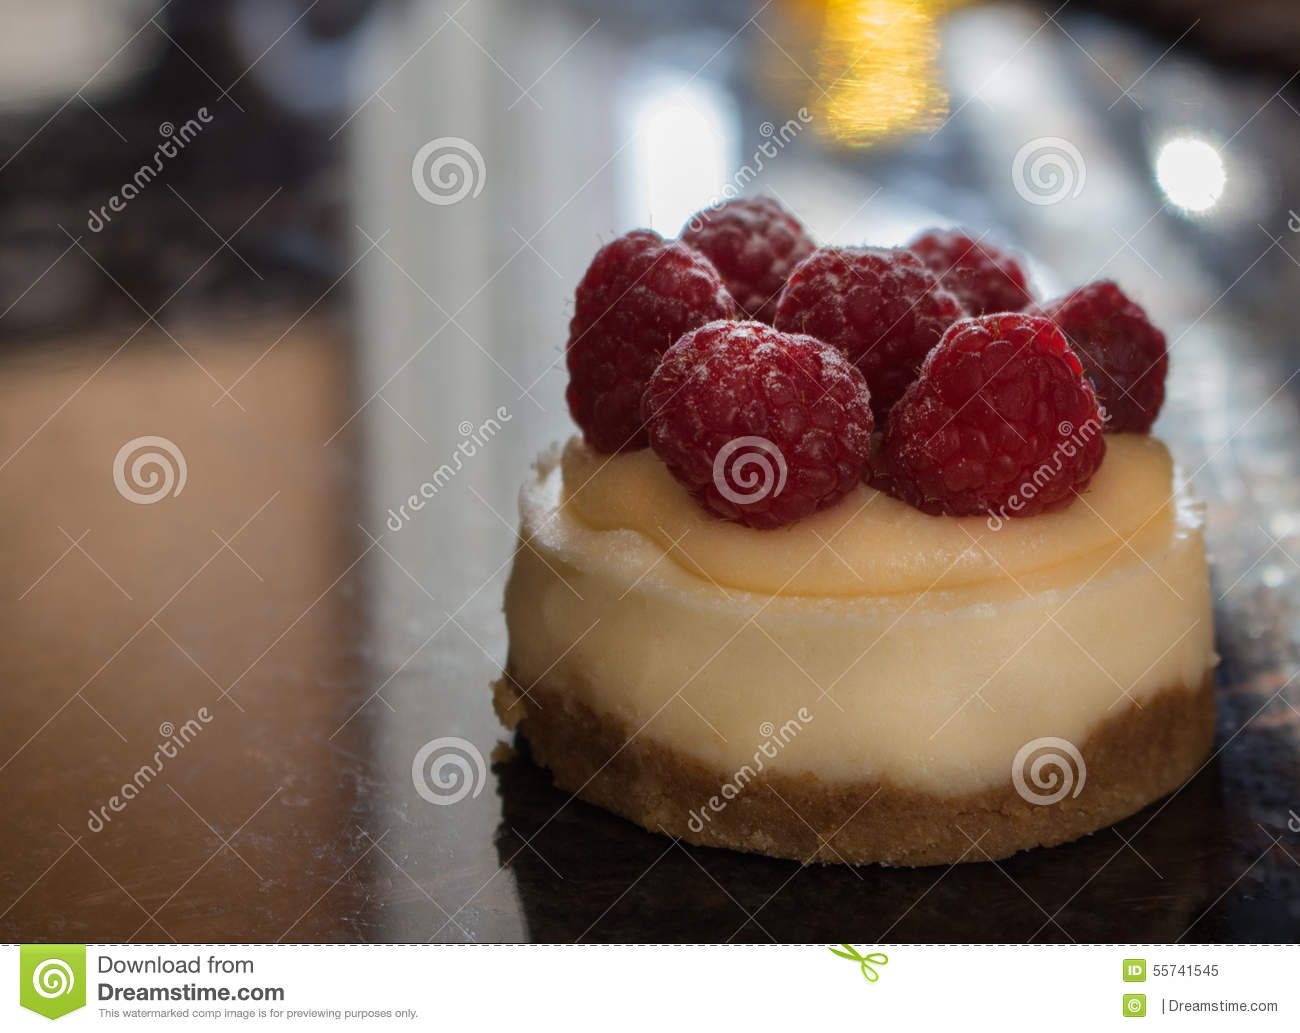 Mini malinowy cheesecake